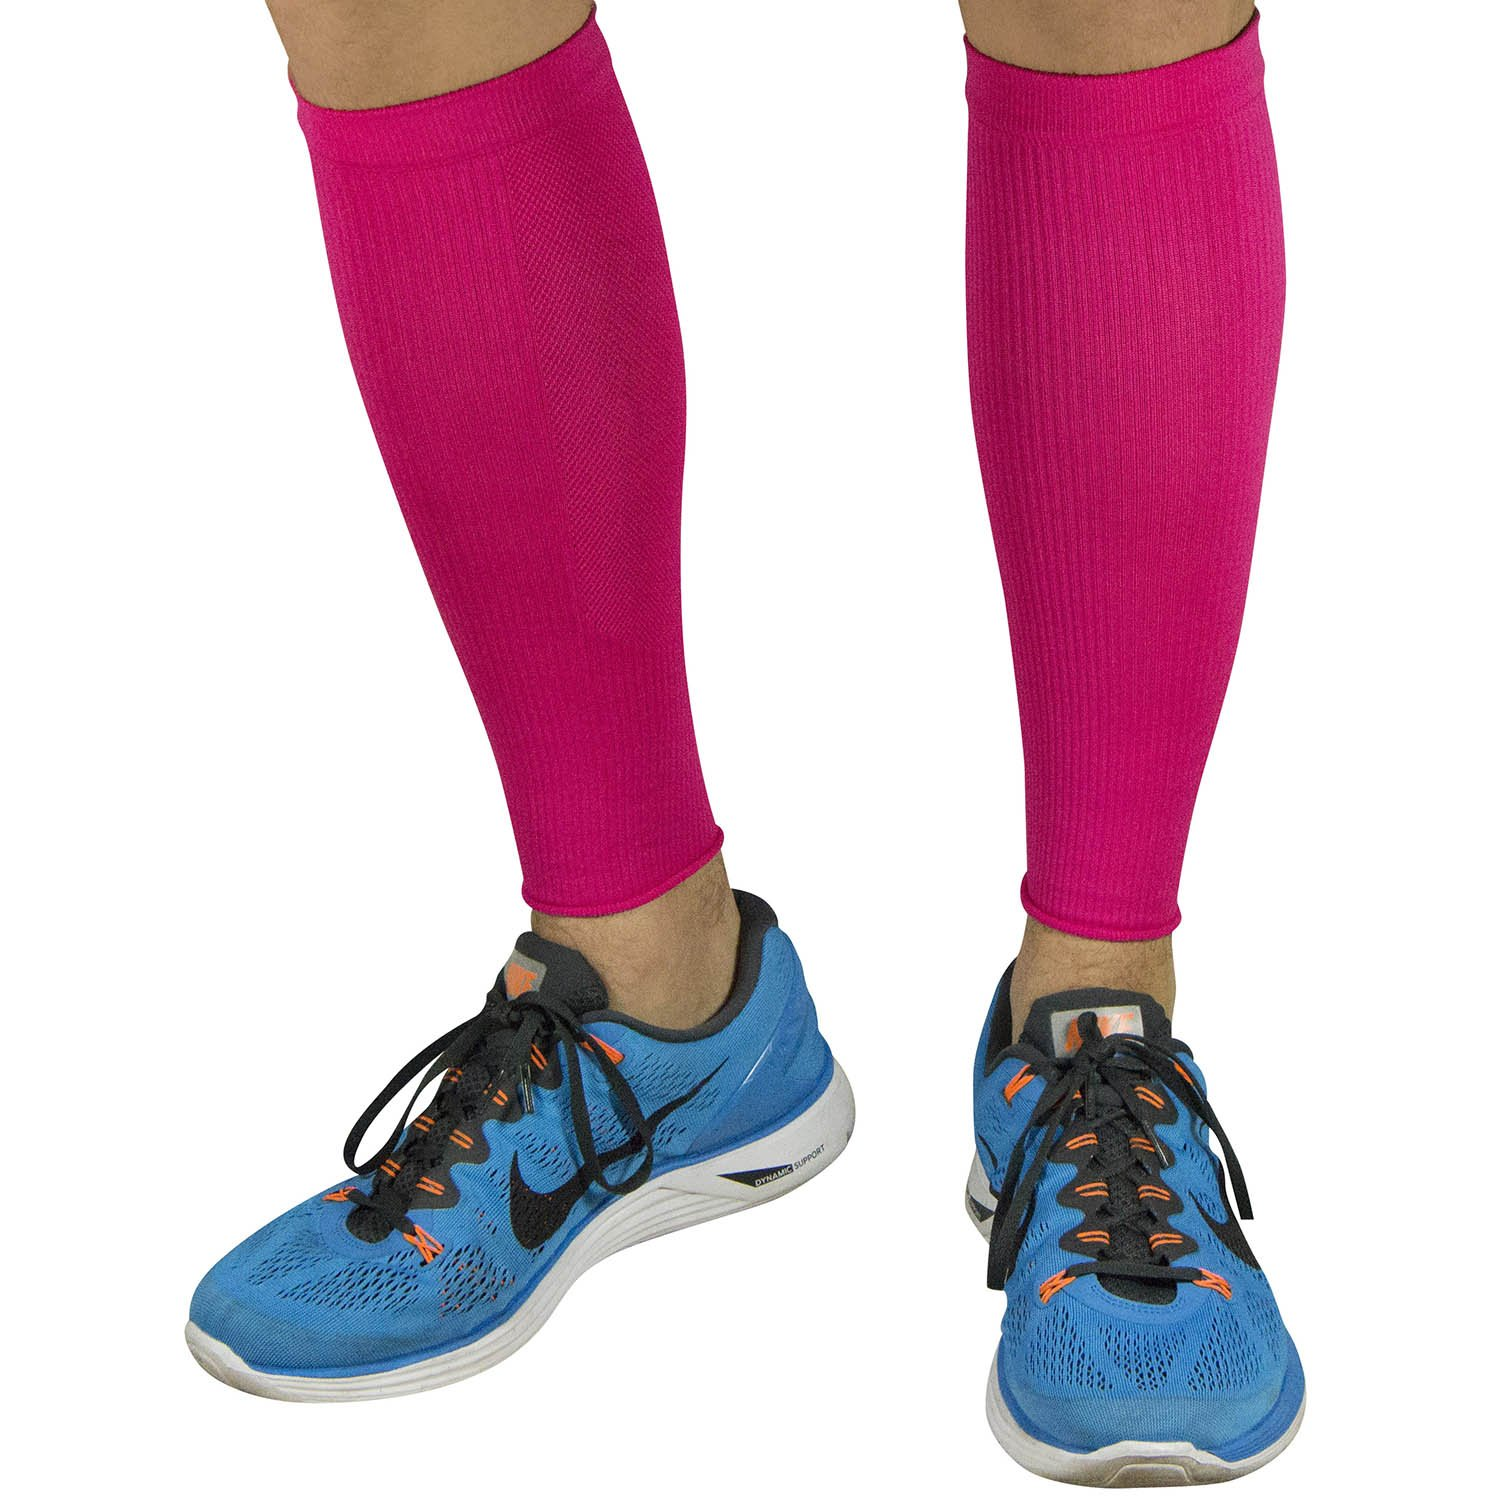 Calf Sleeves - #1 Compression Leg Sleeve for Runners - Men and Women Shin Sleeves